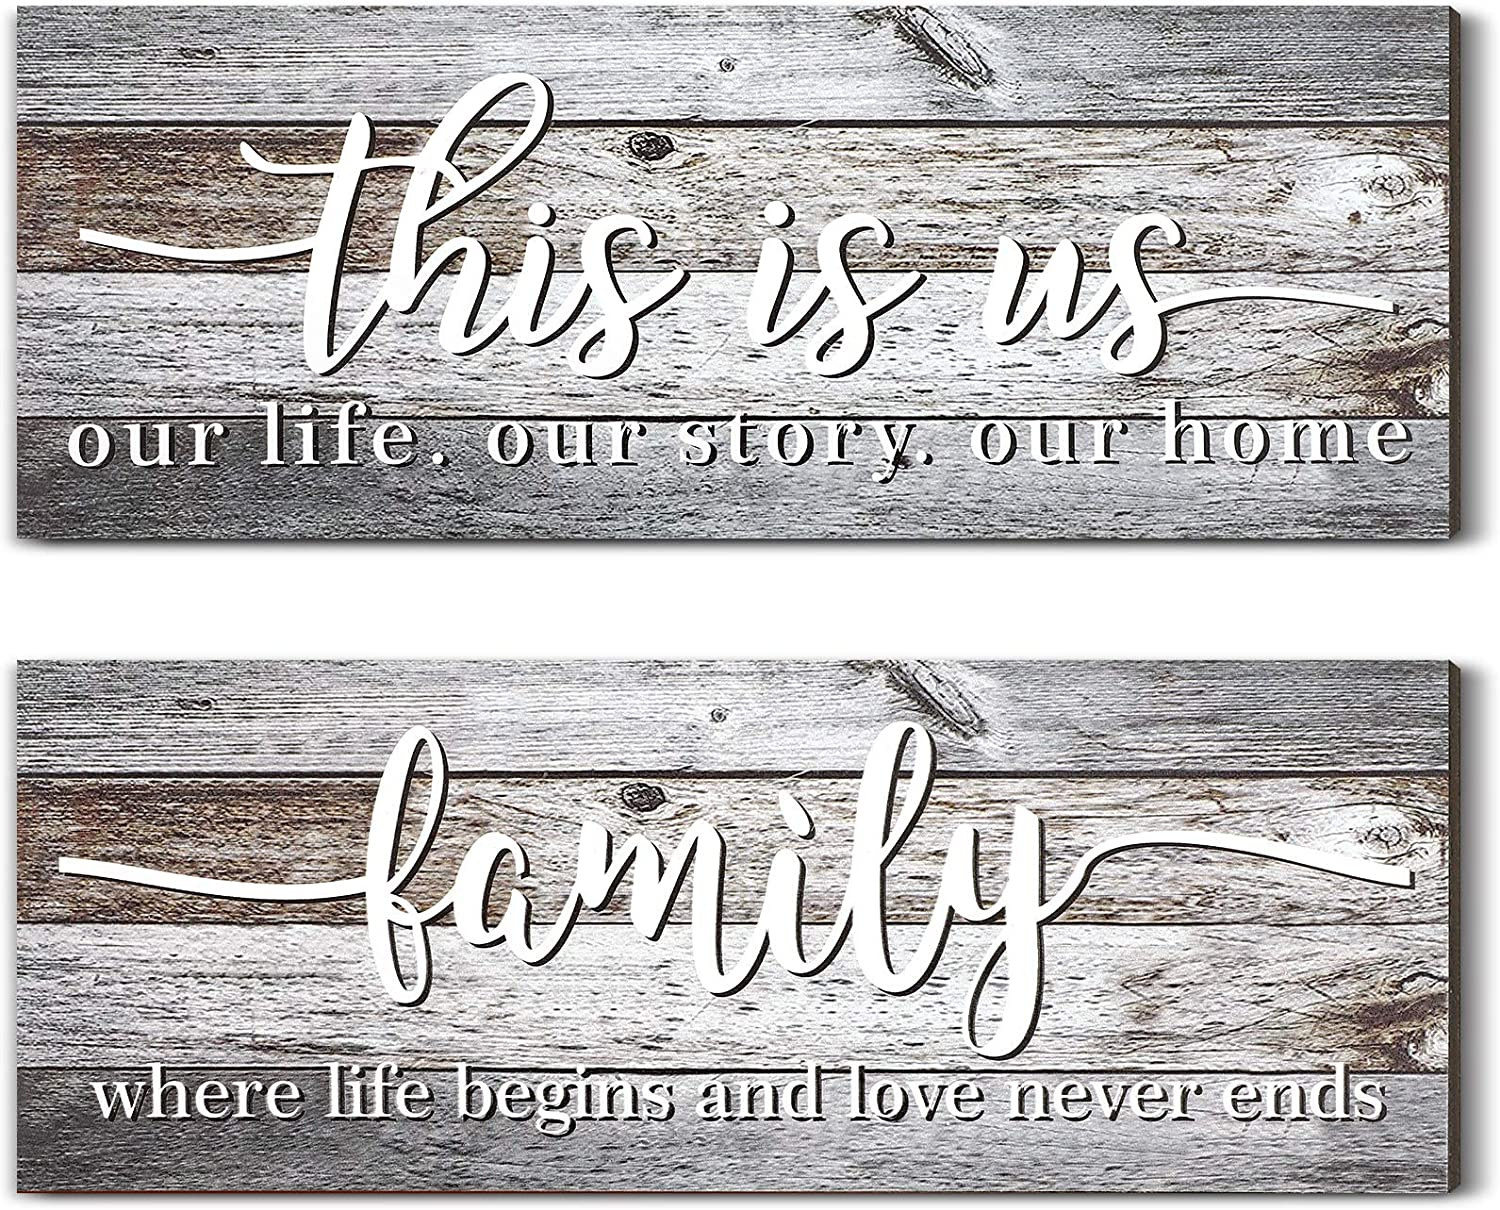 Jetec 2 Pieces This is Us Rustic Print Wood Sign Framed Family Rustic Wooden Wall Decor Farmhouse Entryway Signs for Bedroom Living Room Office Home Wall Outdoor Decor (Rustic Gray)